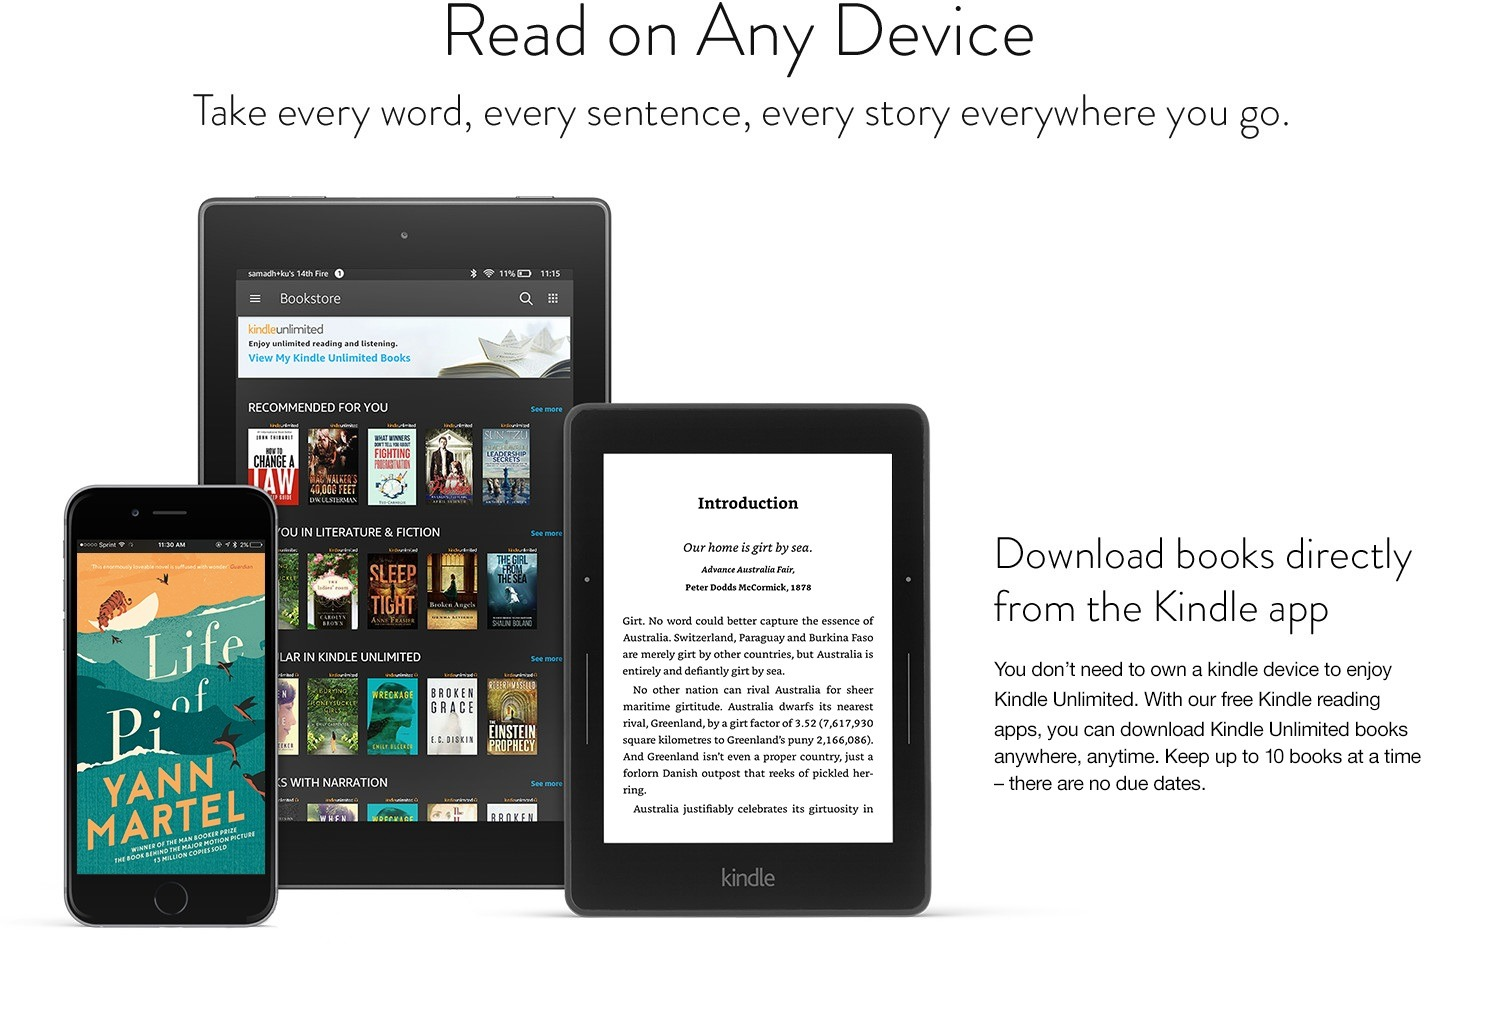 Download books directly from the Kindle app - You don't need to own a Kindle device to enjoy Kindle Unlimited. With our free Kindle reading apps, you can download Kindle Unlimited books anywhere, anytime.